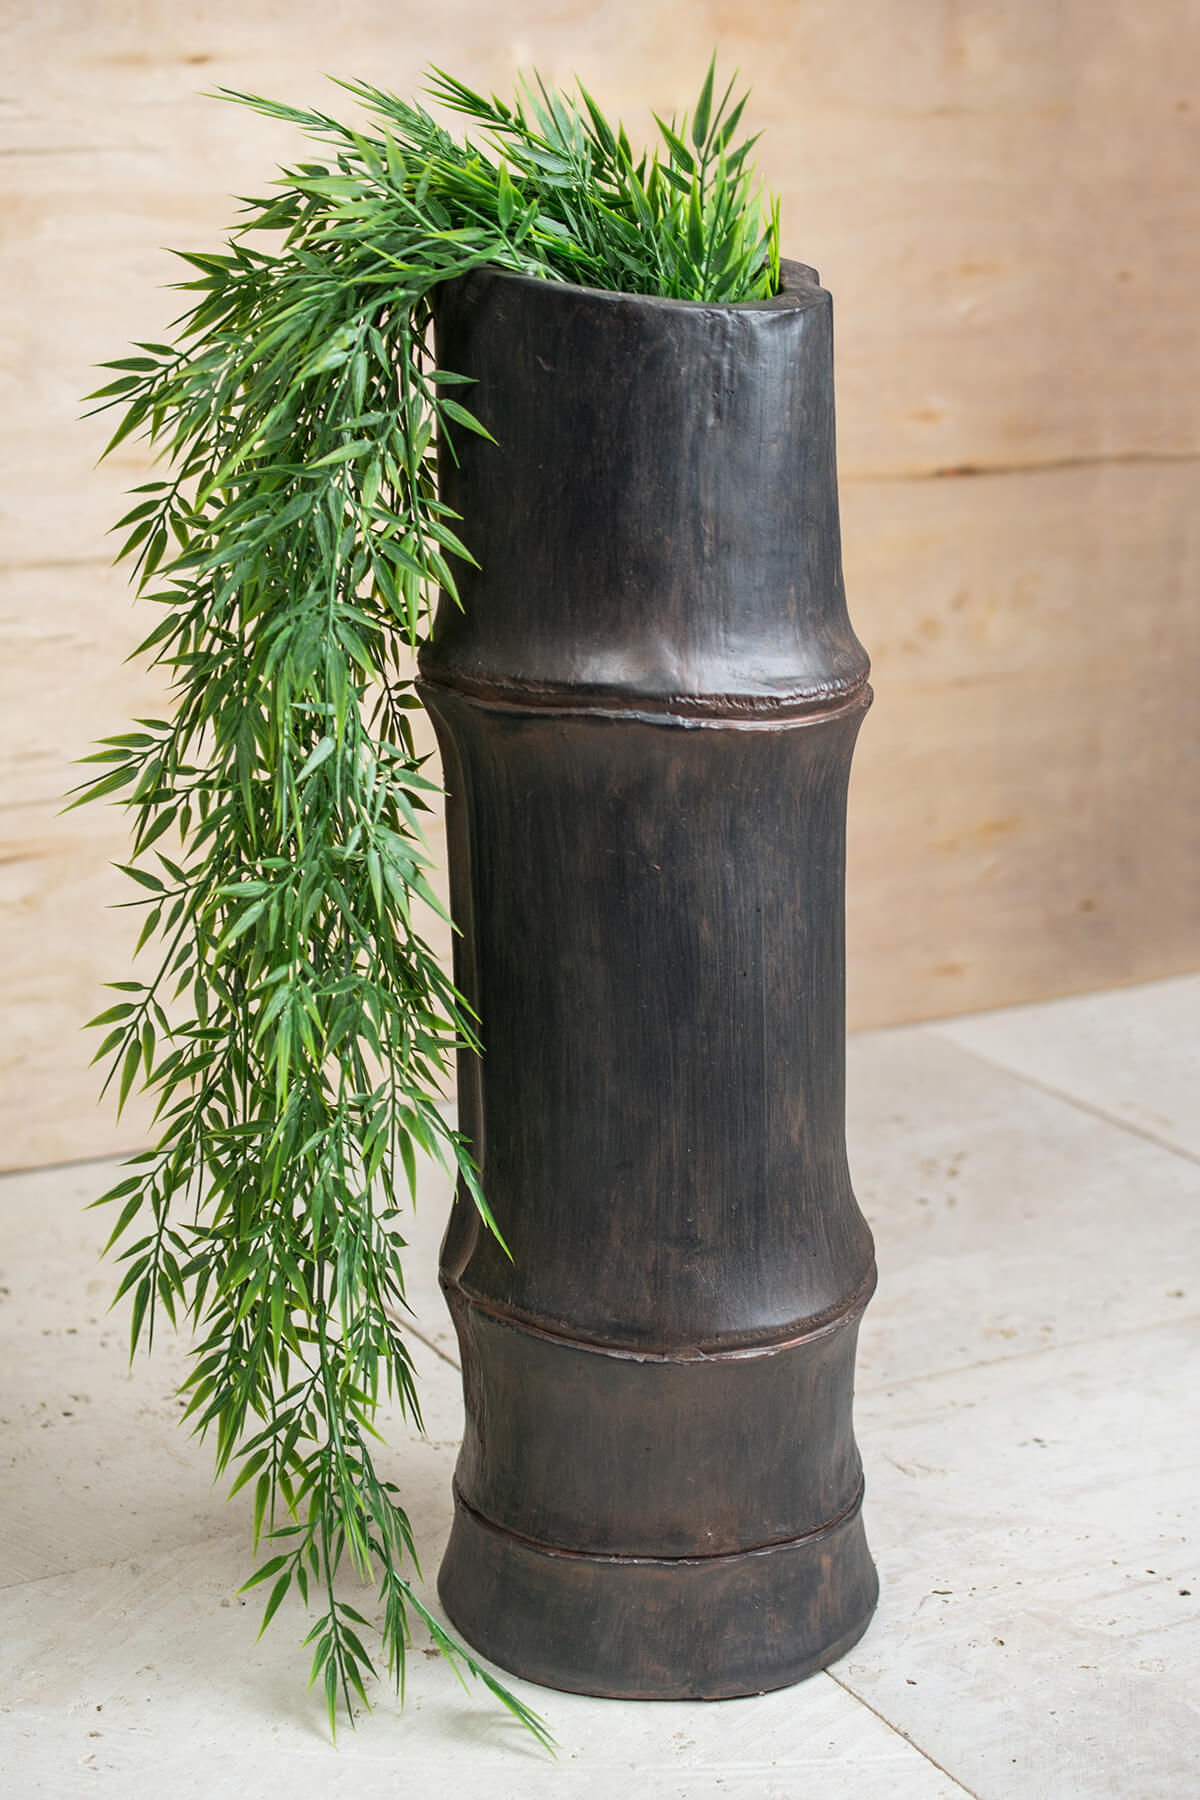 Tall in bamboo vase